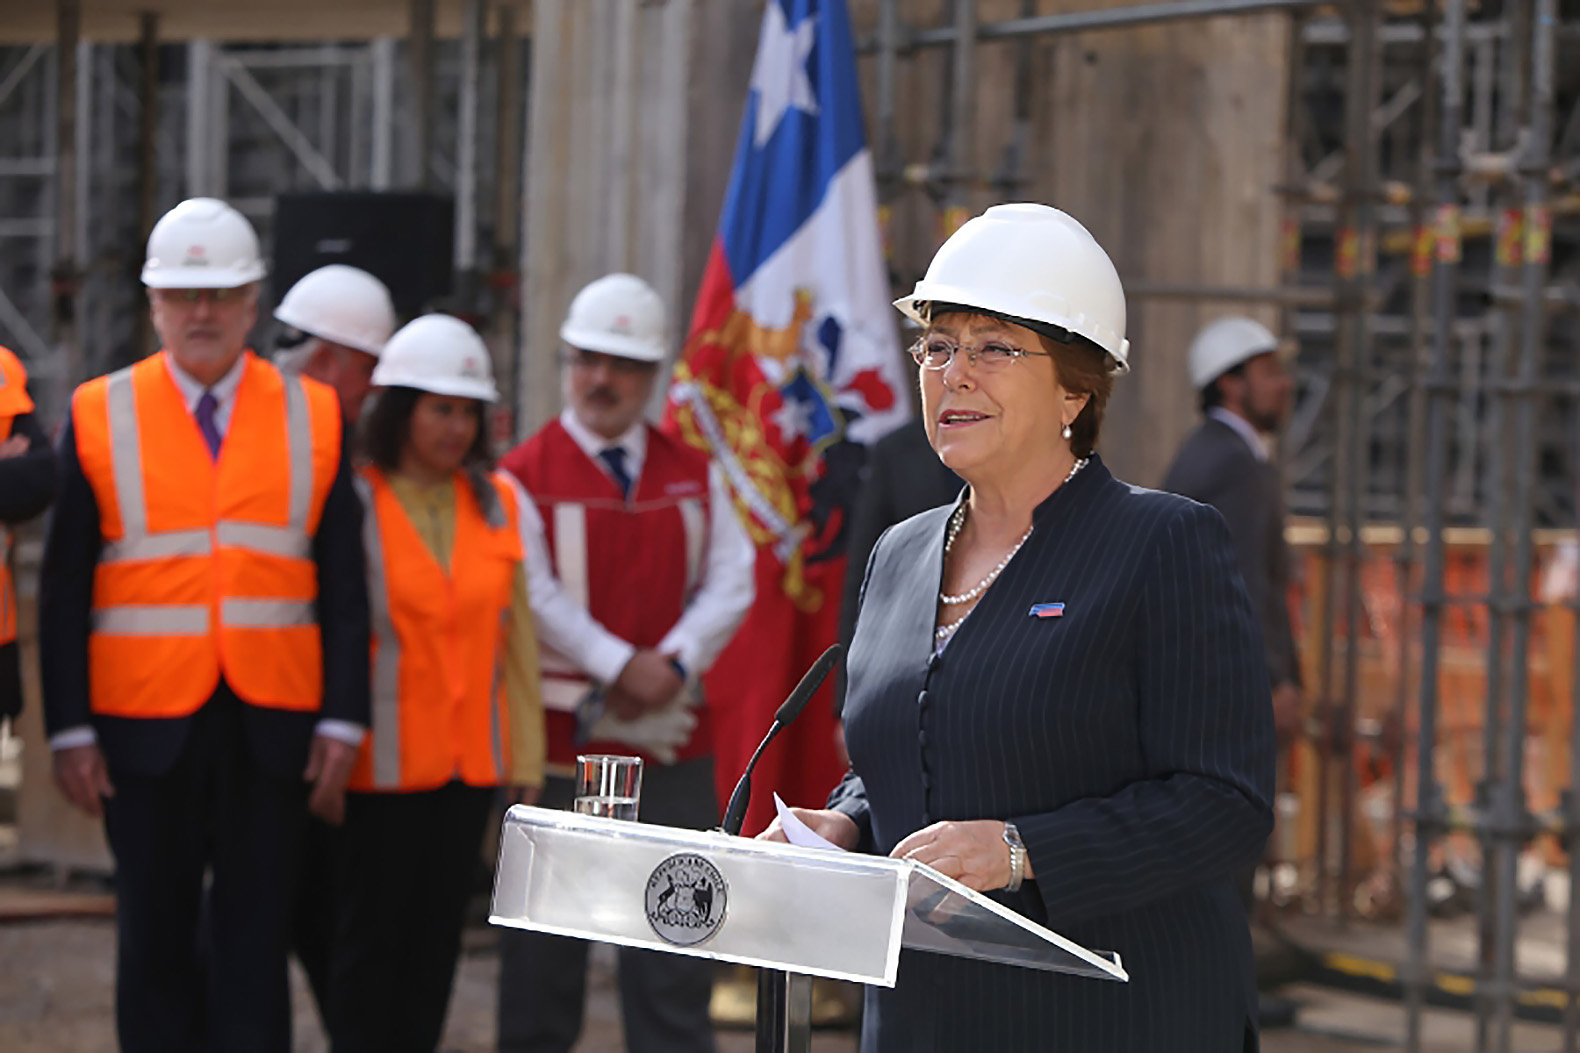 Chile President Michelle Bachelet at today's announcement by Total and SunPower to provide solar power for Metro de Santiago, the world's first metro to run on solar. (PRNewsFoto/SunPower Corp.)